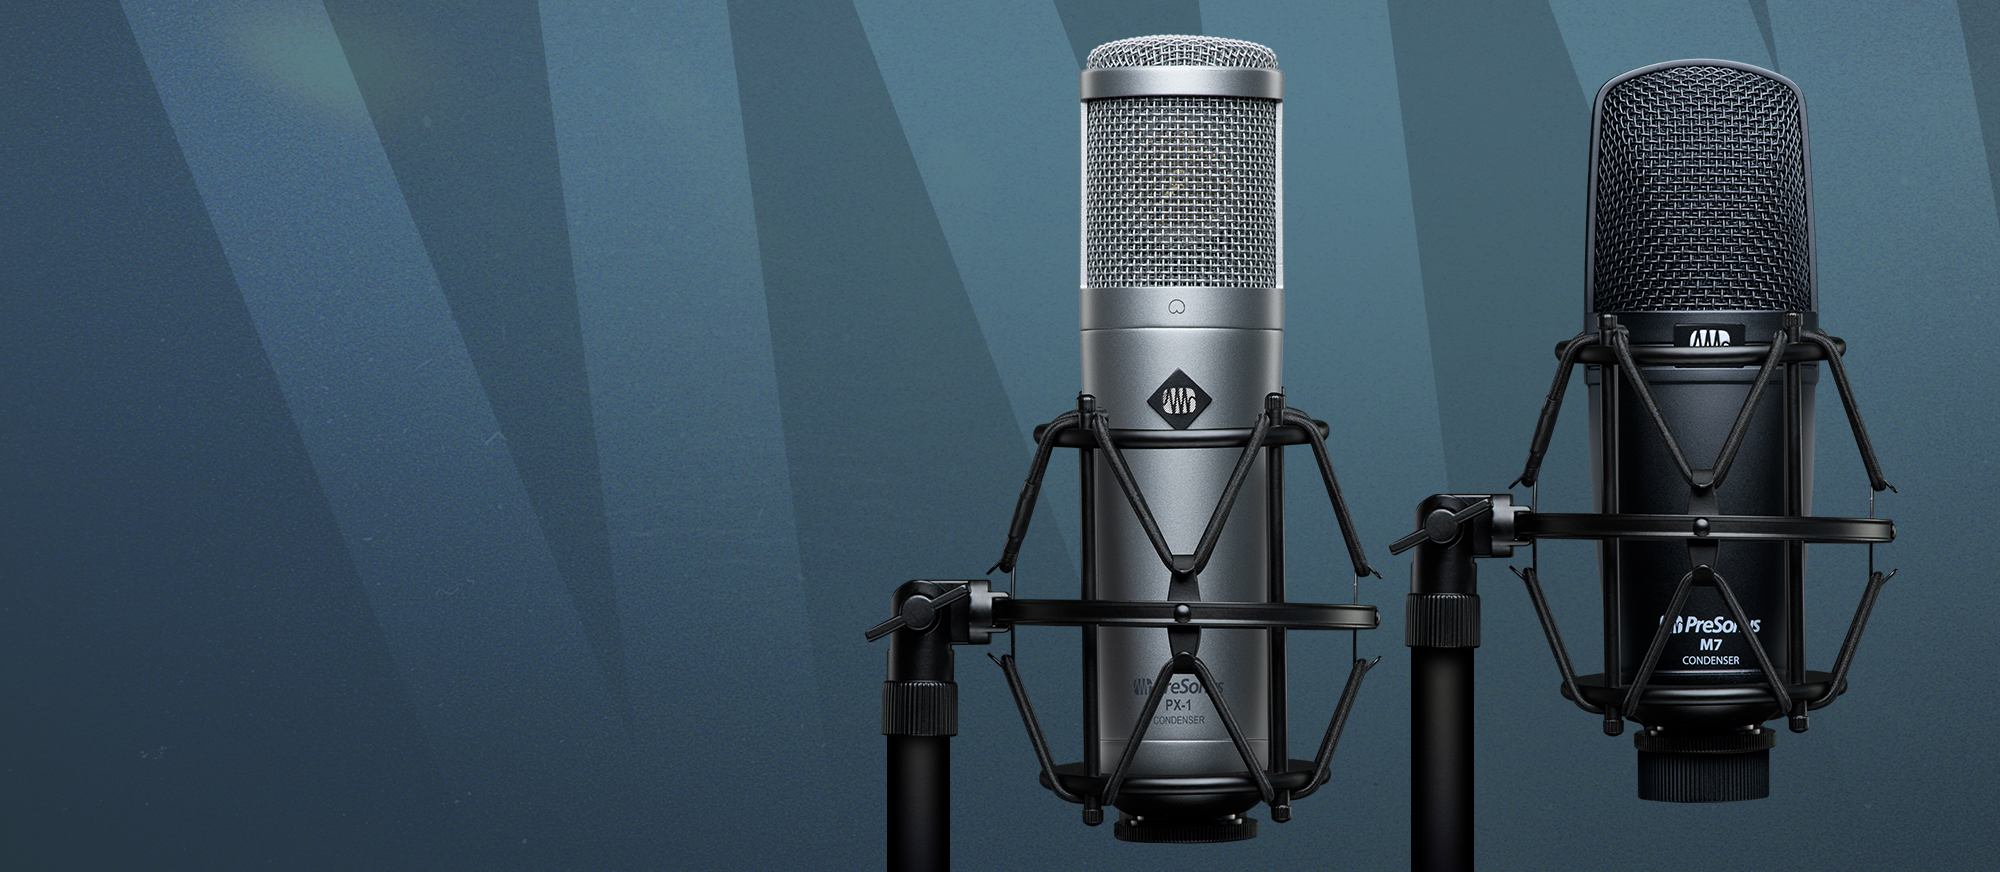 PX-1 and M7 mics in SHK-1 shock mount